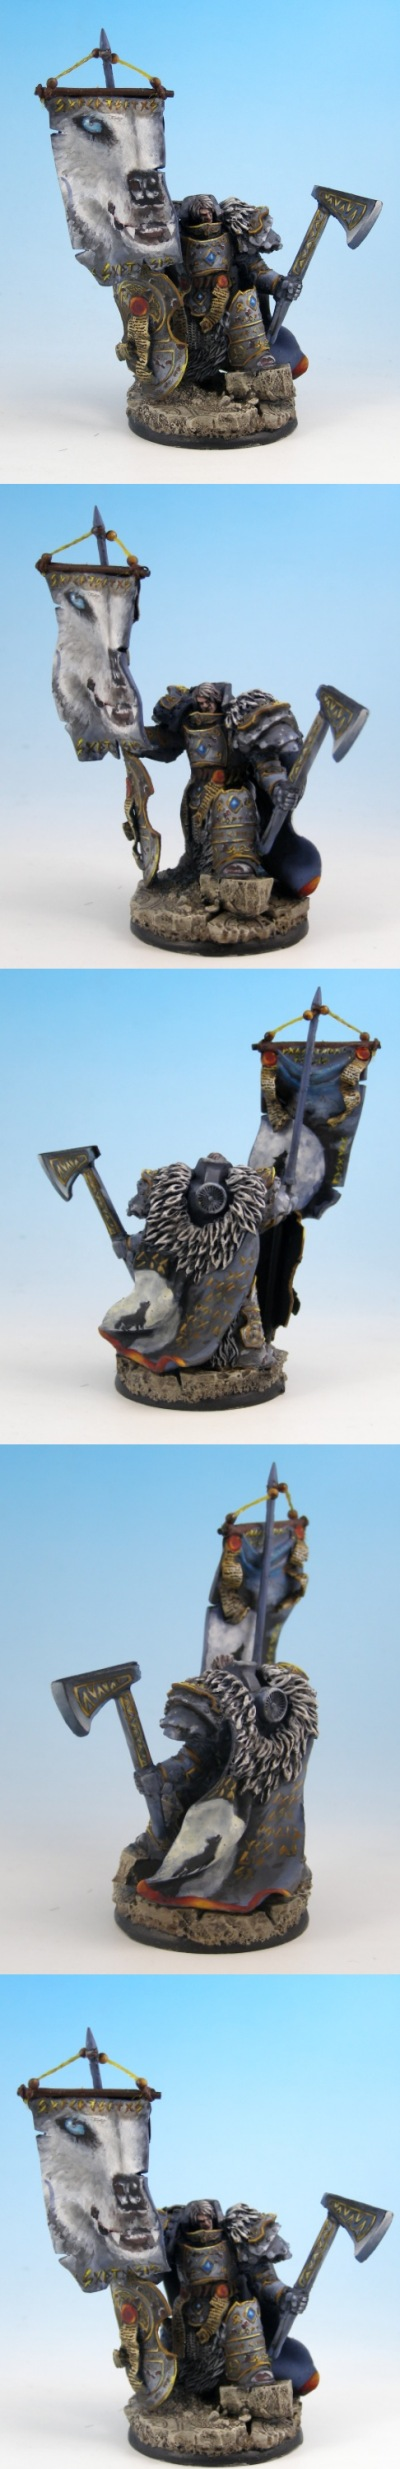 28mm / 30mm SF Celtic Warrior conversion / sculpture By Scibor